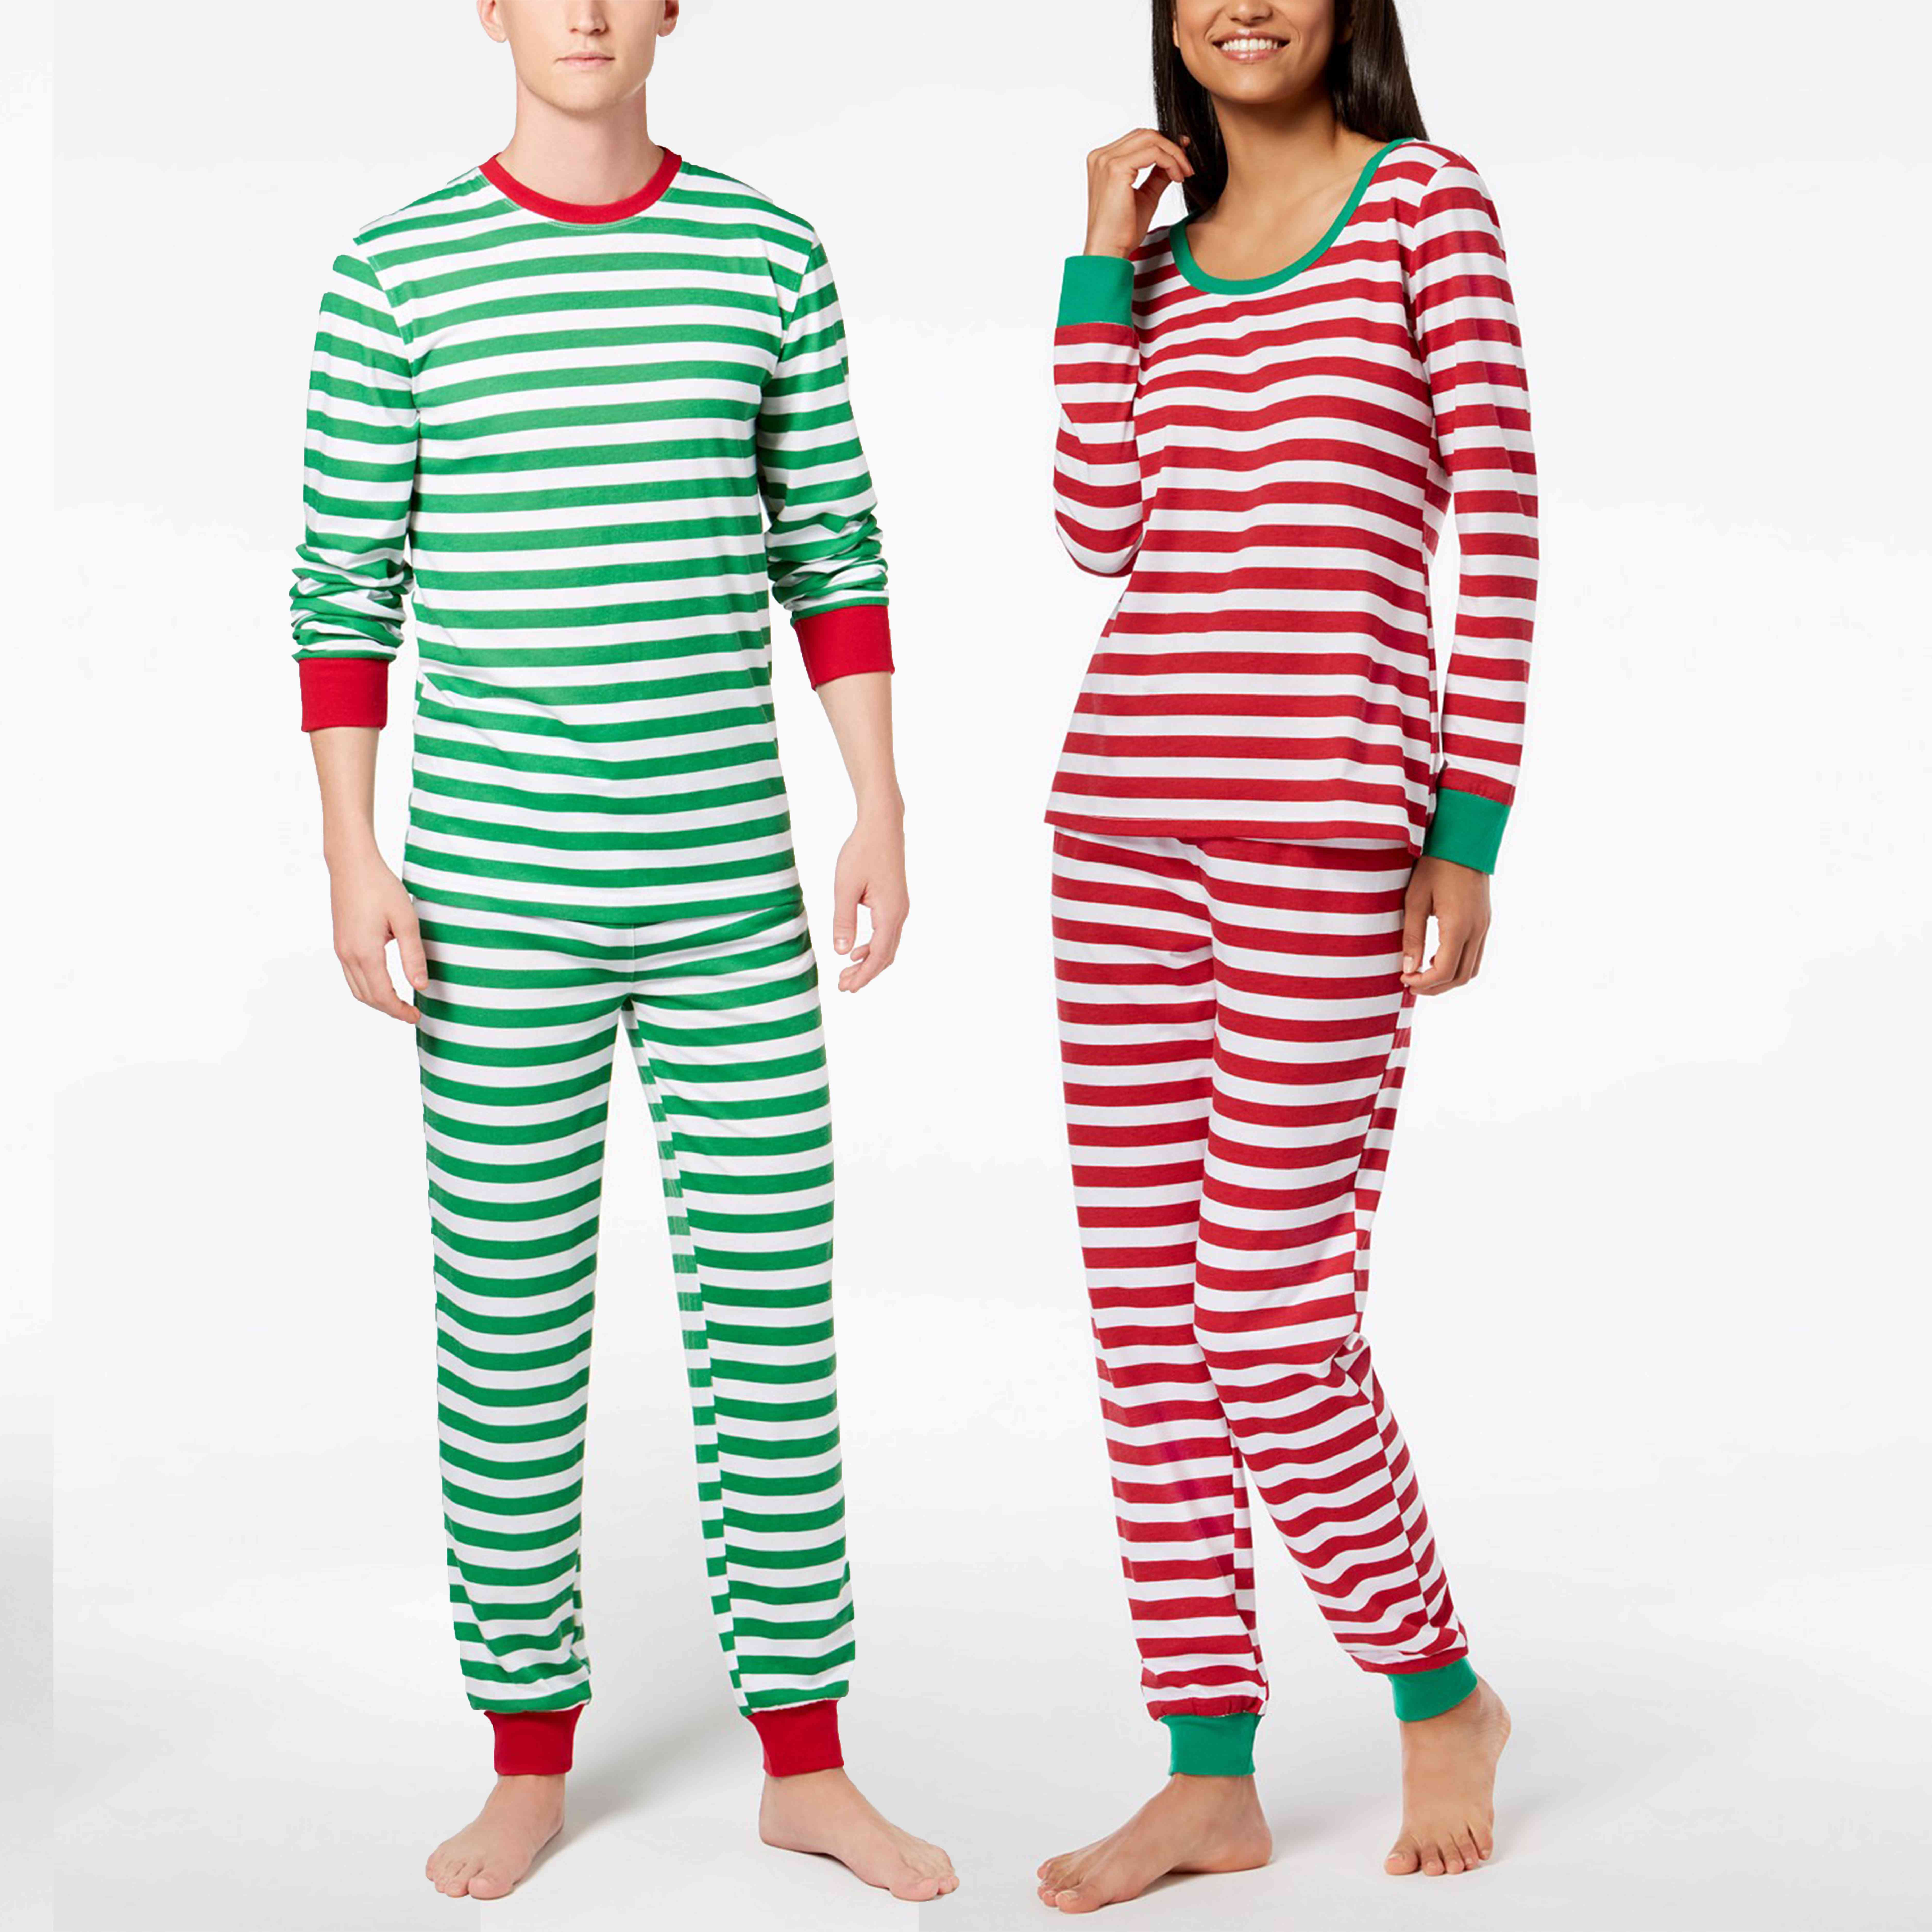 22 Matching Holiday Pajamas Perfect For Your First Married Christmas